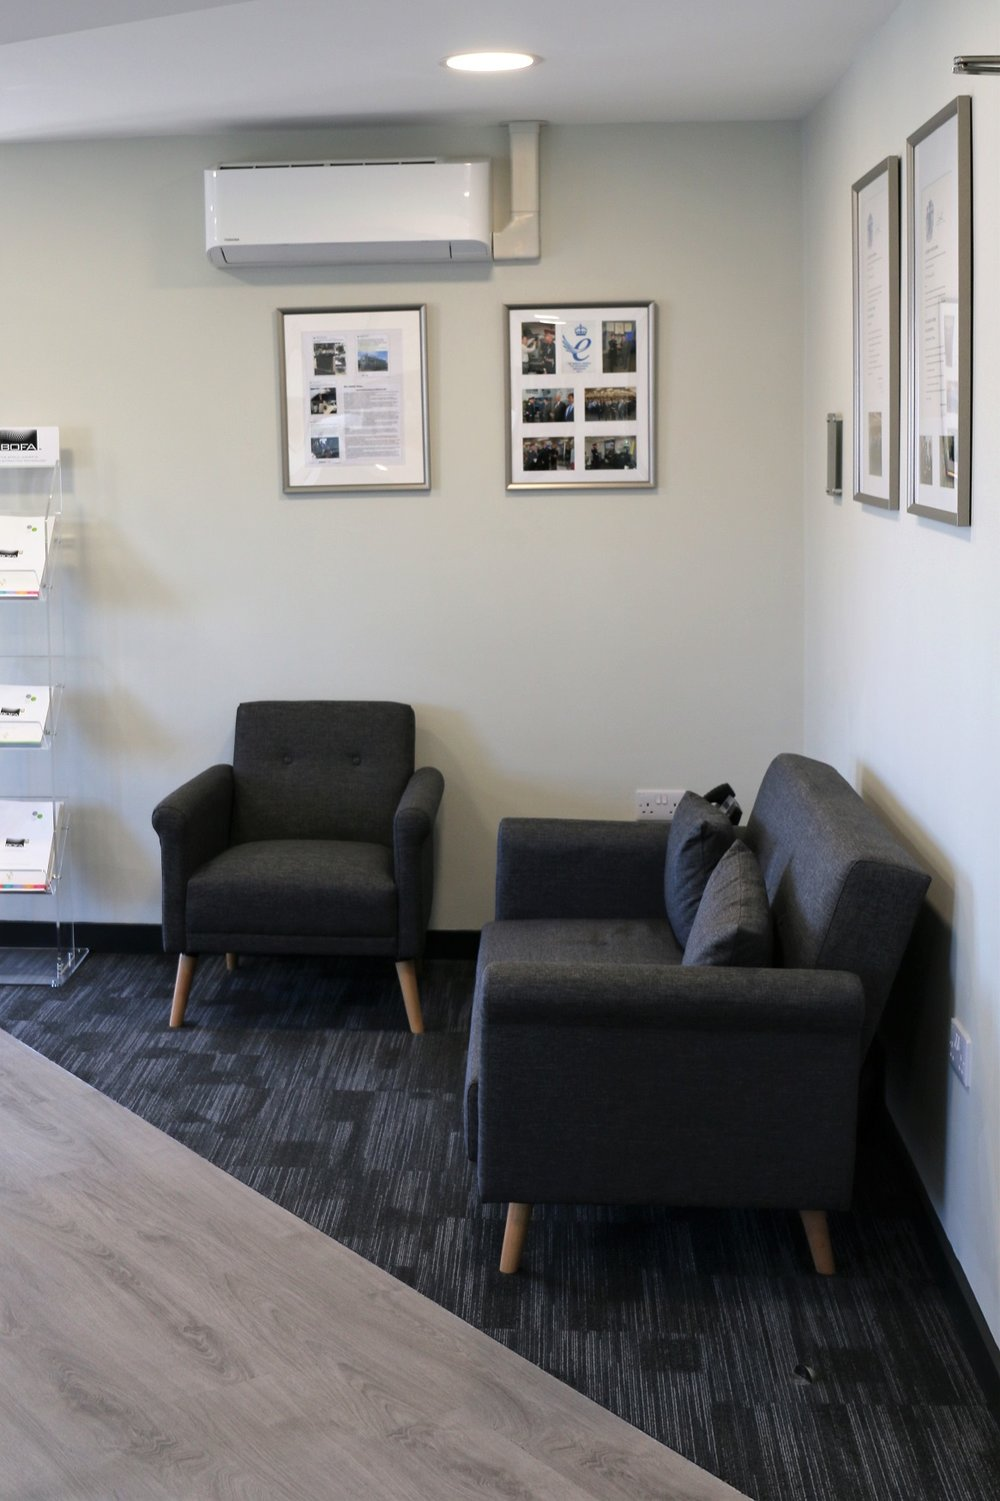 Provision of furniture for reception area